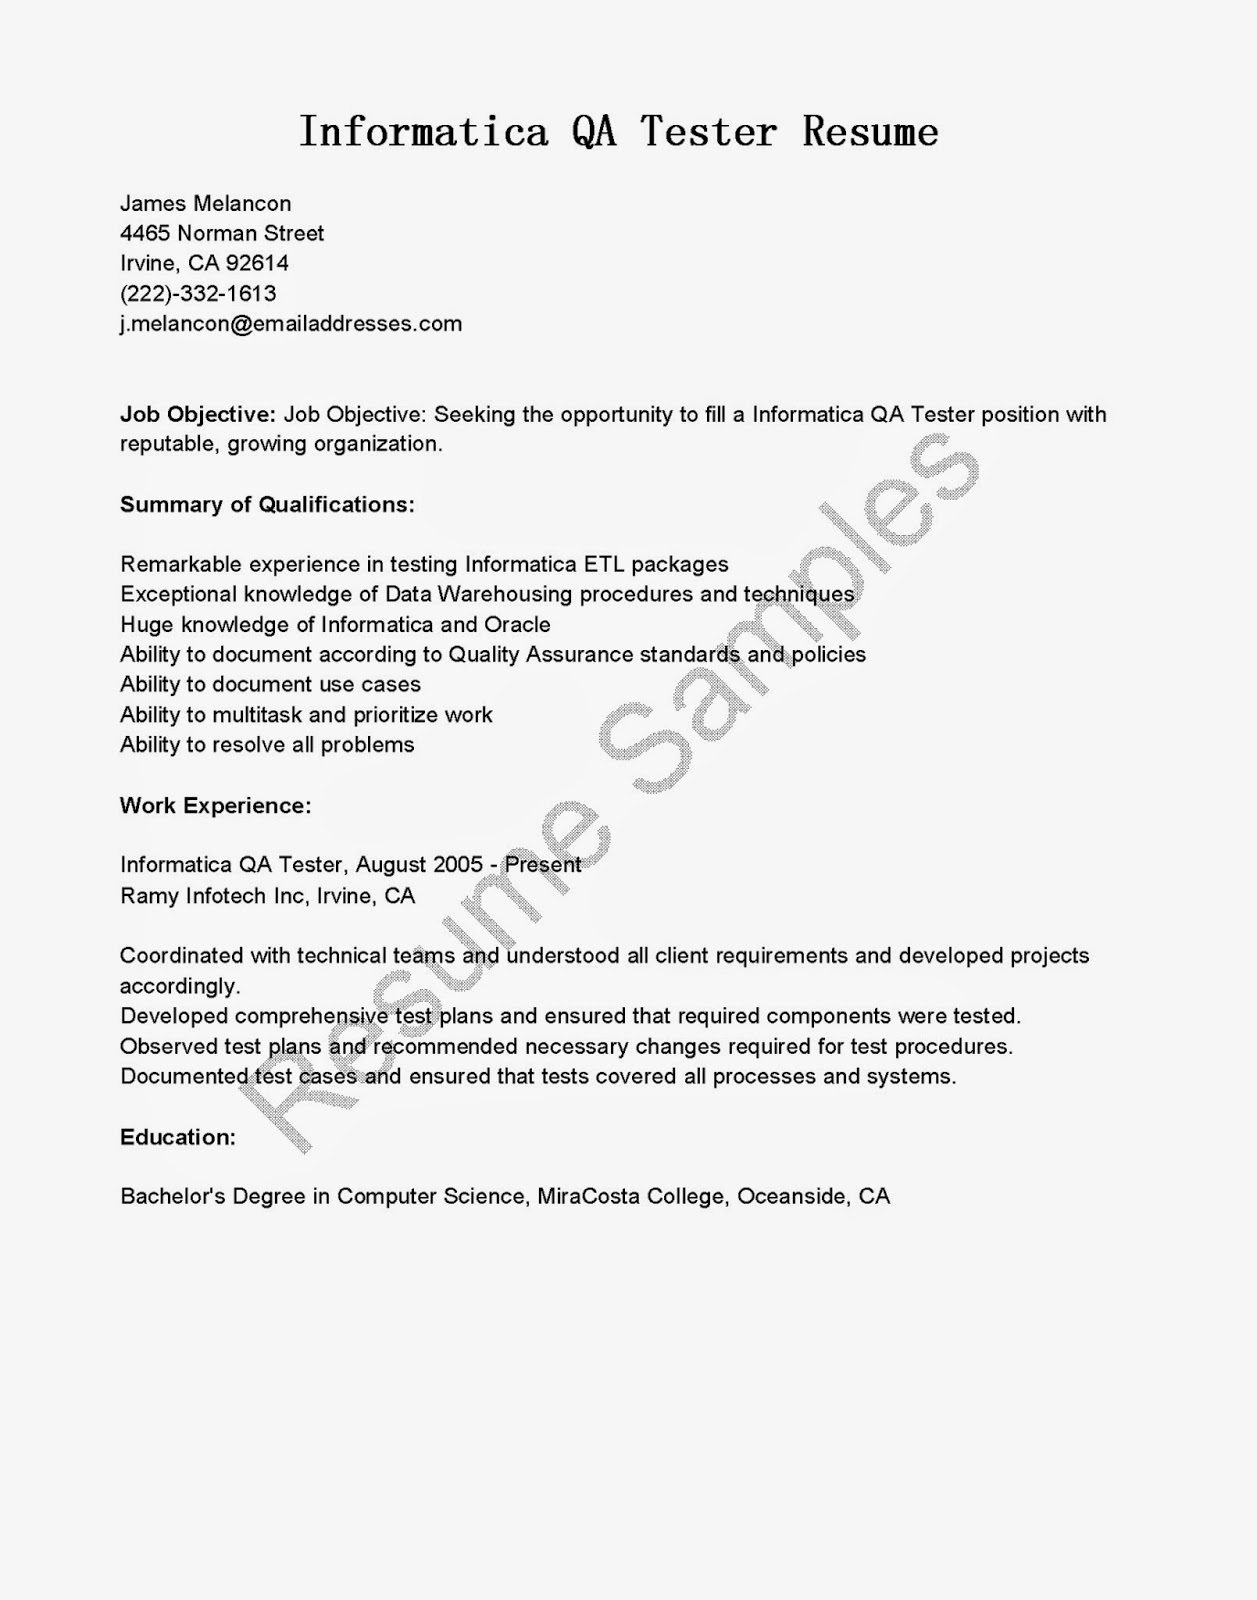 Best ideas about Application Cover Letter on Pinterest Job resume without cover  letter format cover letter